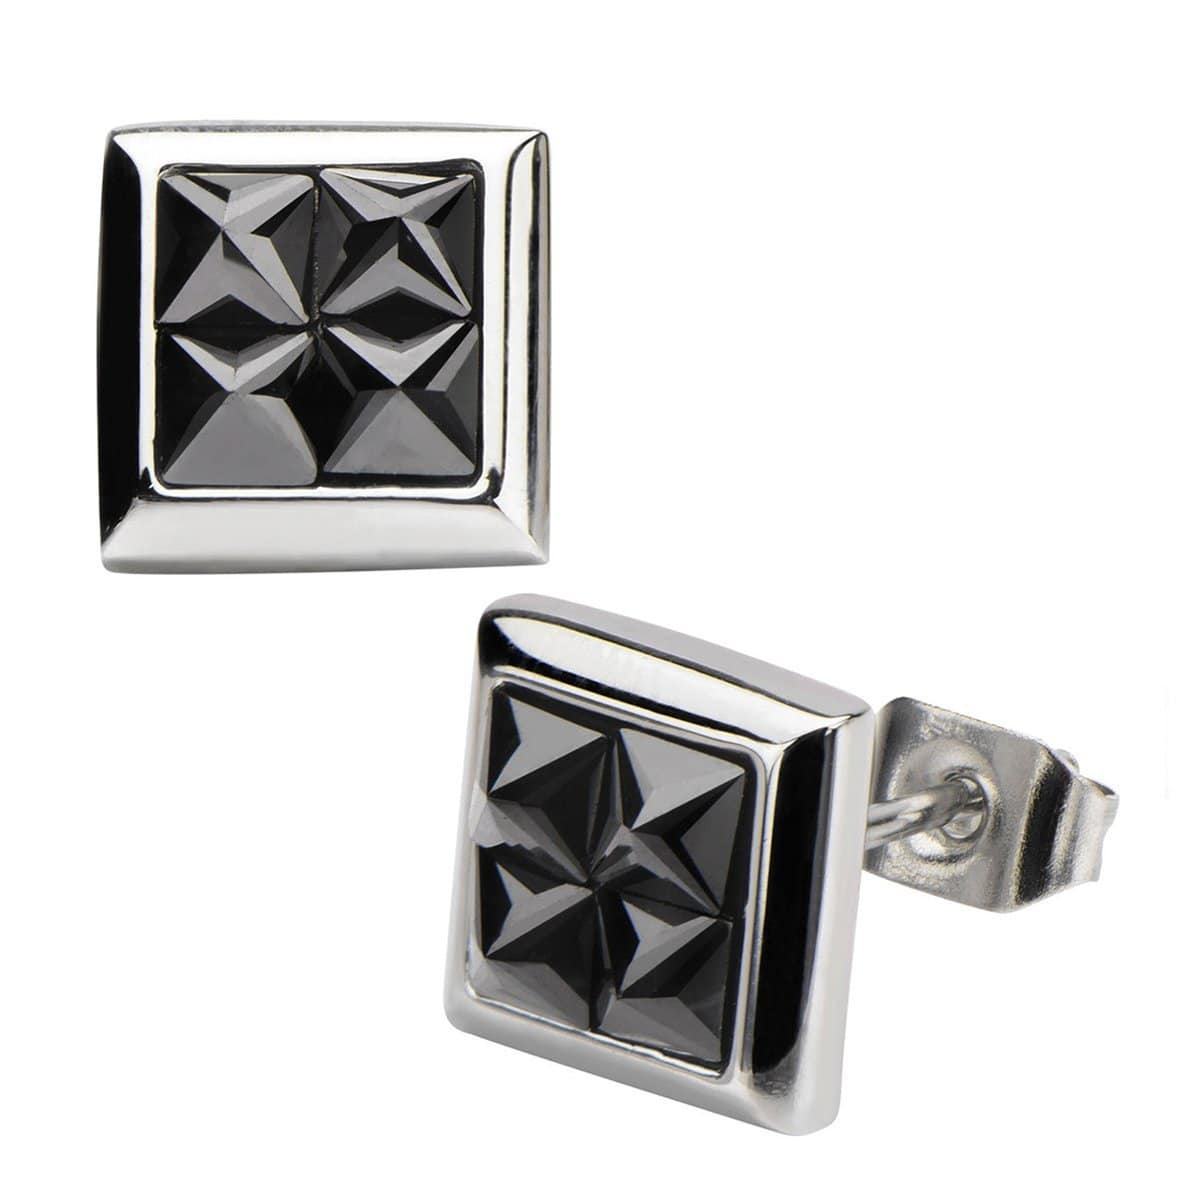 Silver Stainless Steel Four Black Pyramid Crystals Square Studs Earrings